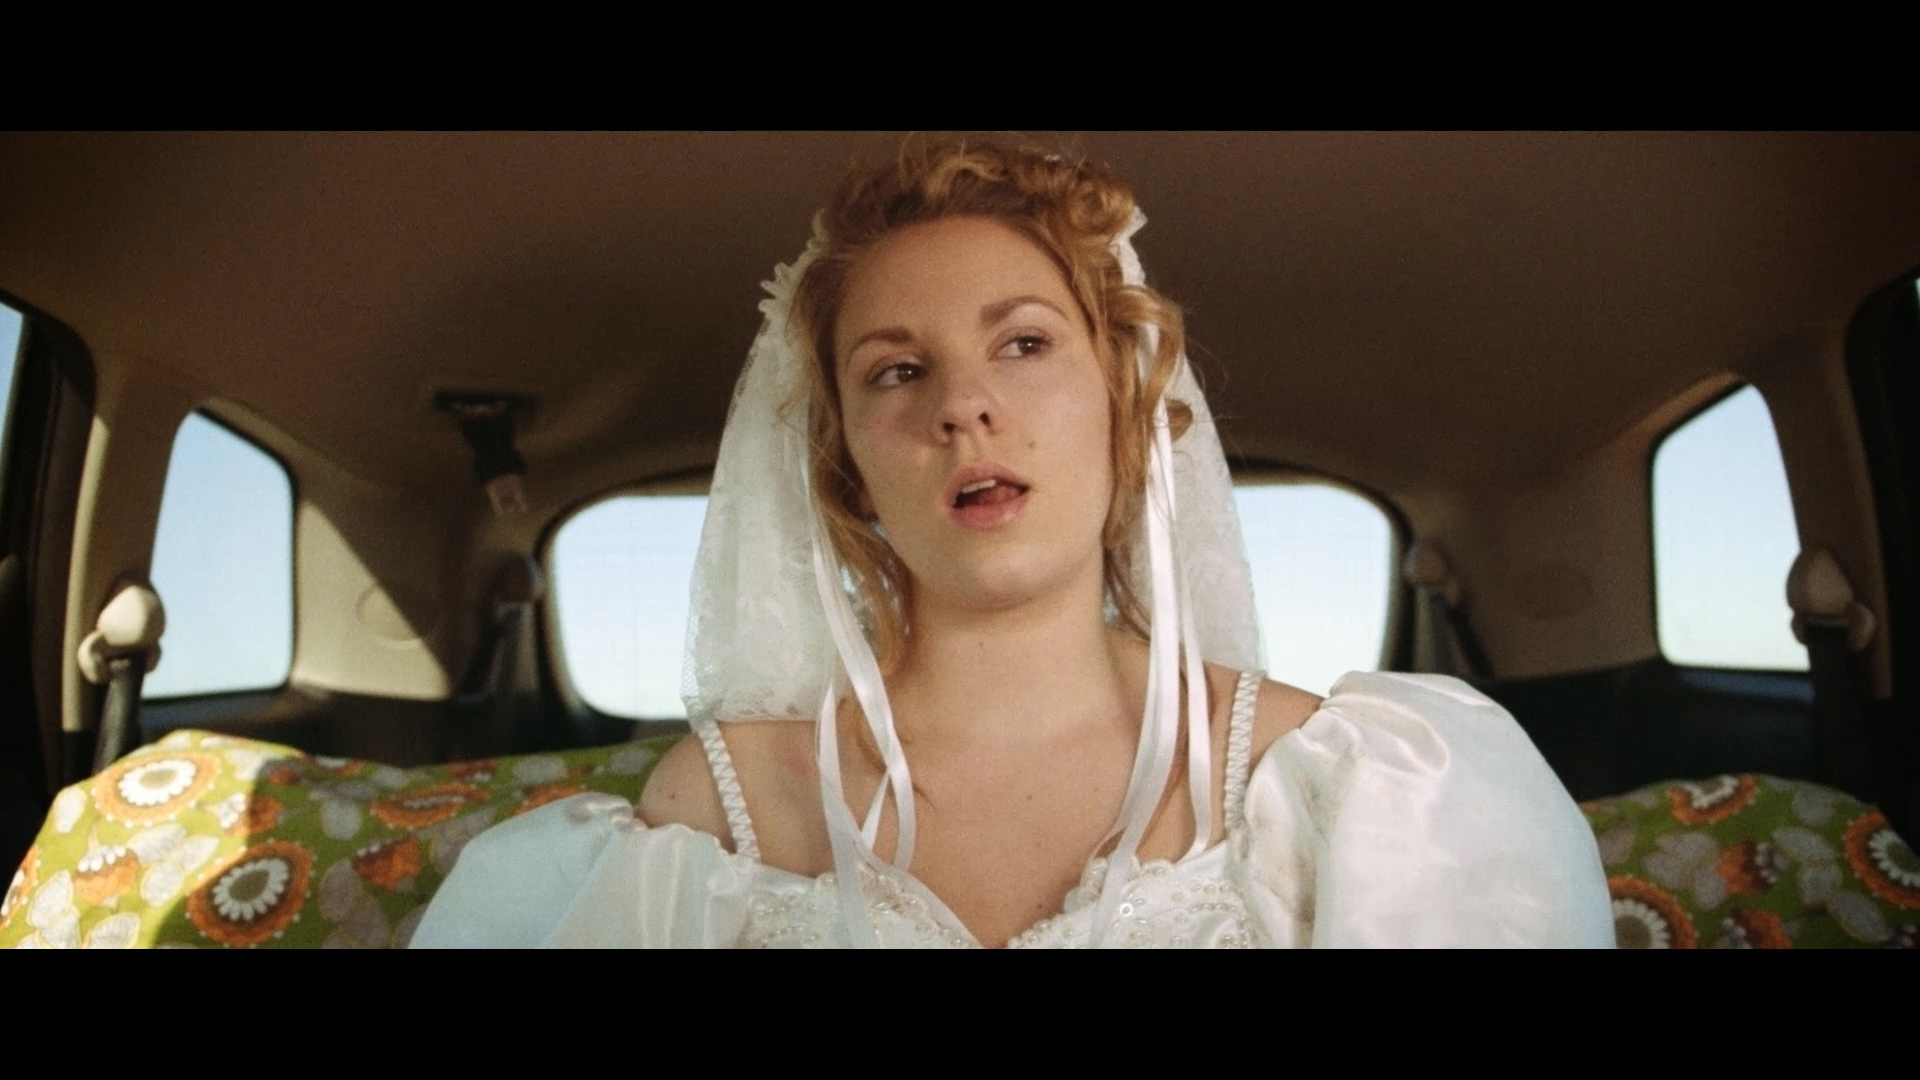 The Happiest Day of my Life - From the backseat Becky (Jeni Bezuidenhout) considers her newfound 'friends'.